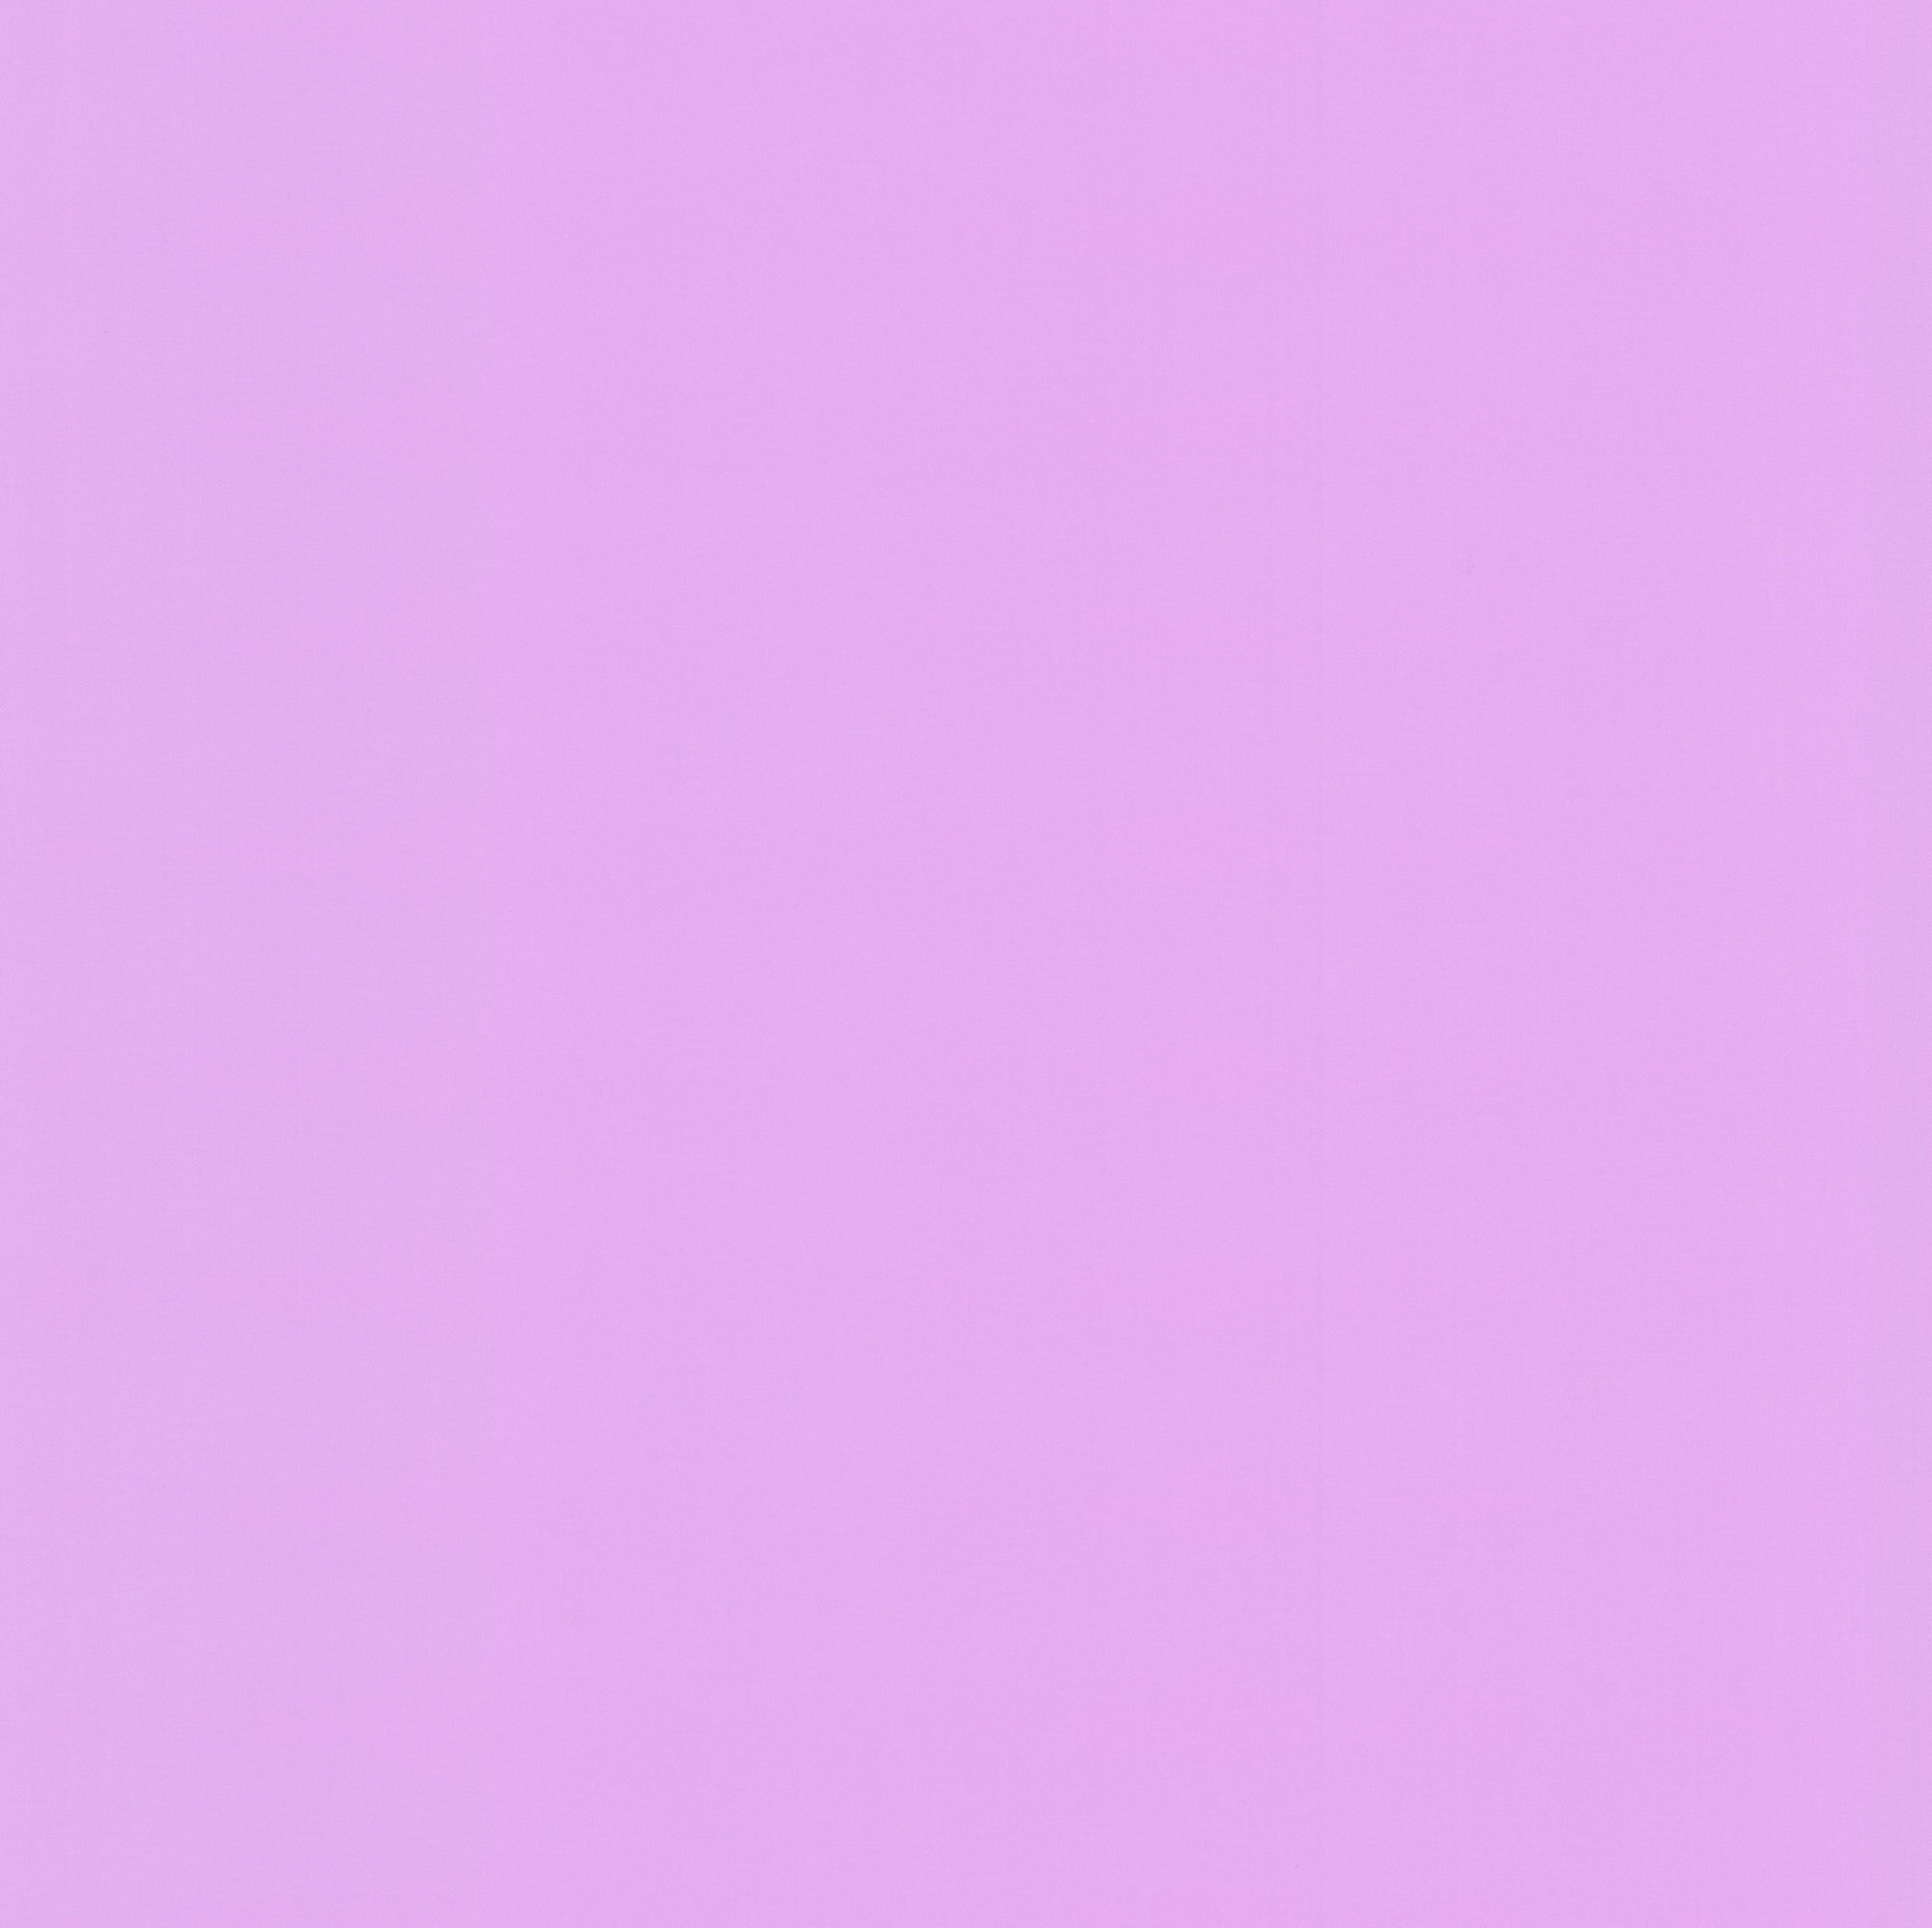 [50+] Light Purple Wallpaper on WallpaperSafari